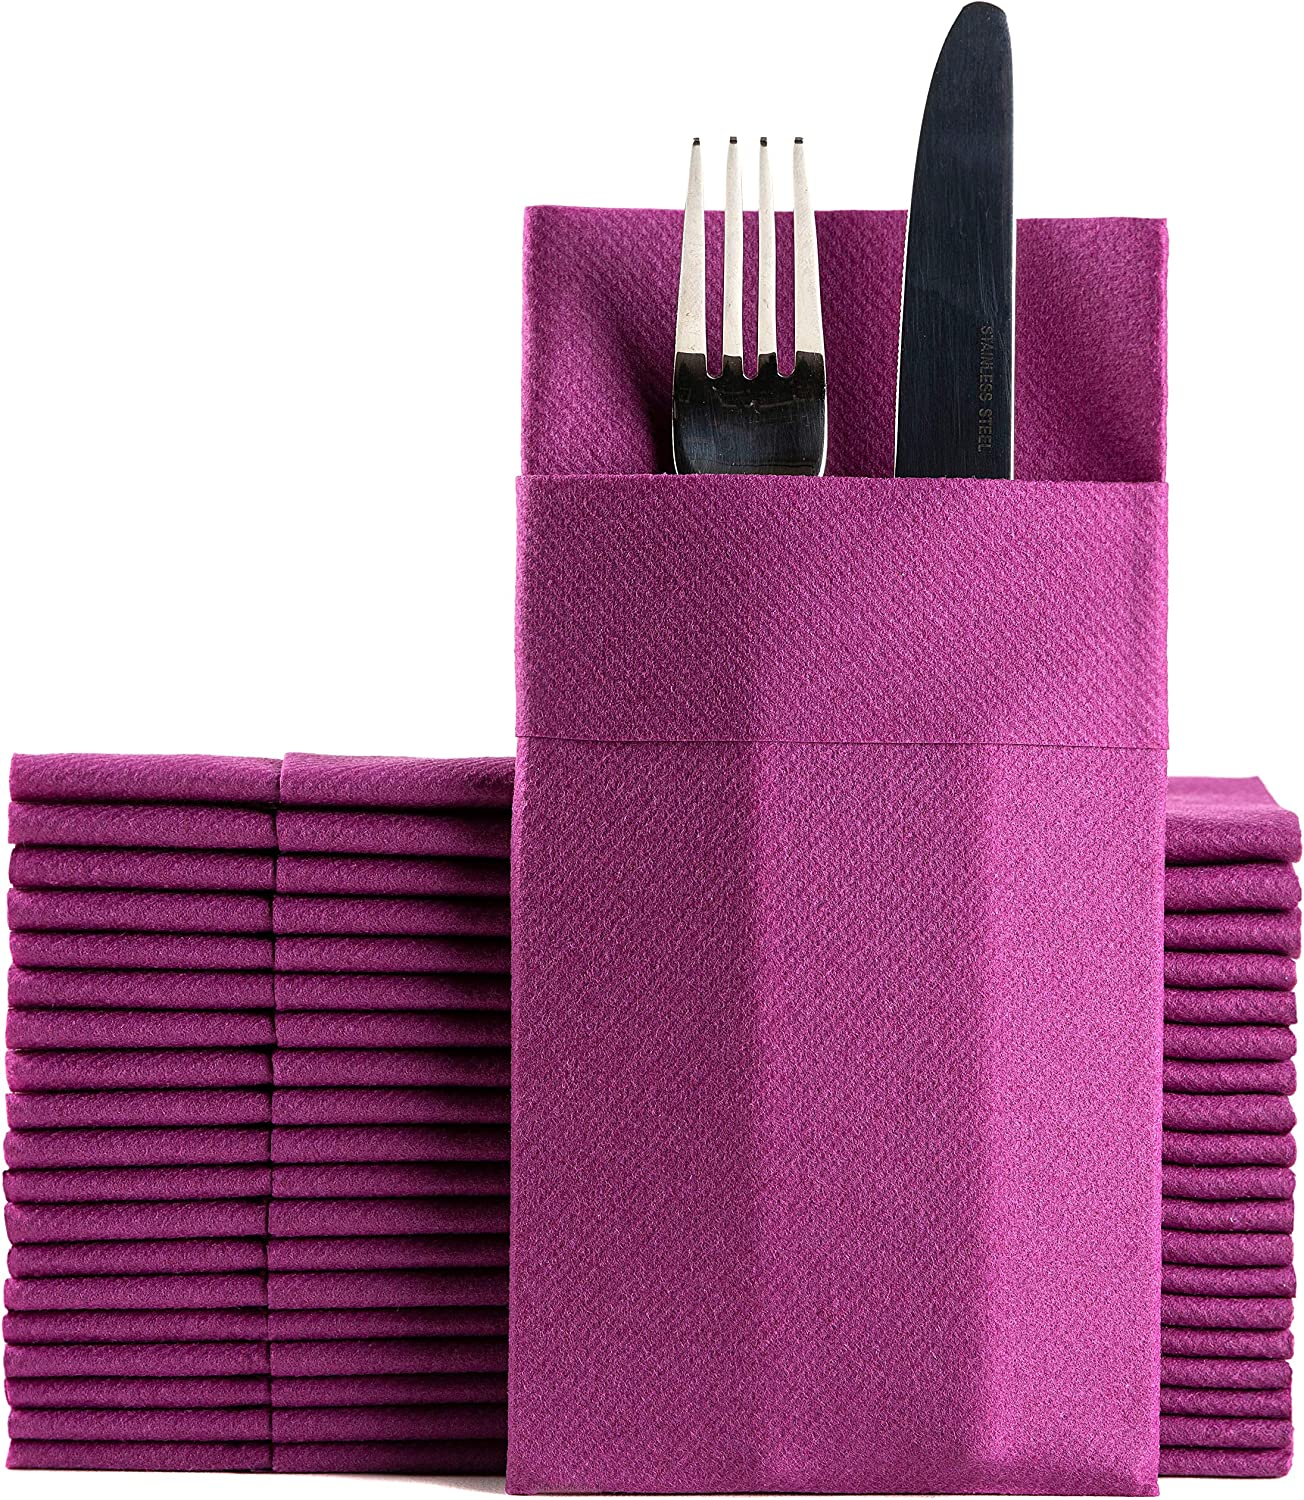 Purple Dinner Napkins Cloth Like with Built-in Flatware Pocket, Linen-Feel Absorbent Disposable Paper Hand Napkins for Kitchen, Bathroom, Parties, Weddings, Dinners or Events, 1/8 Fold, Pack of 50